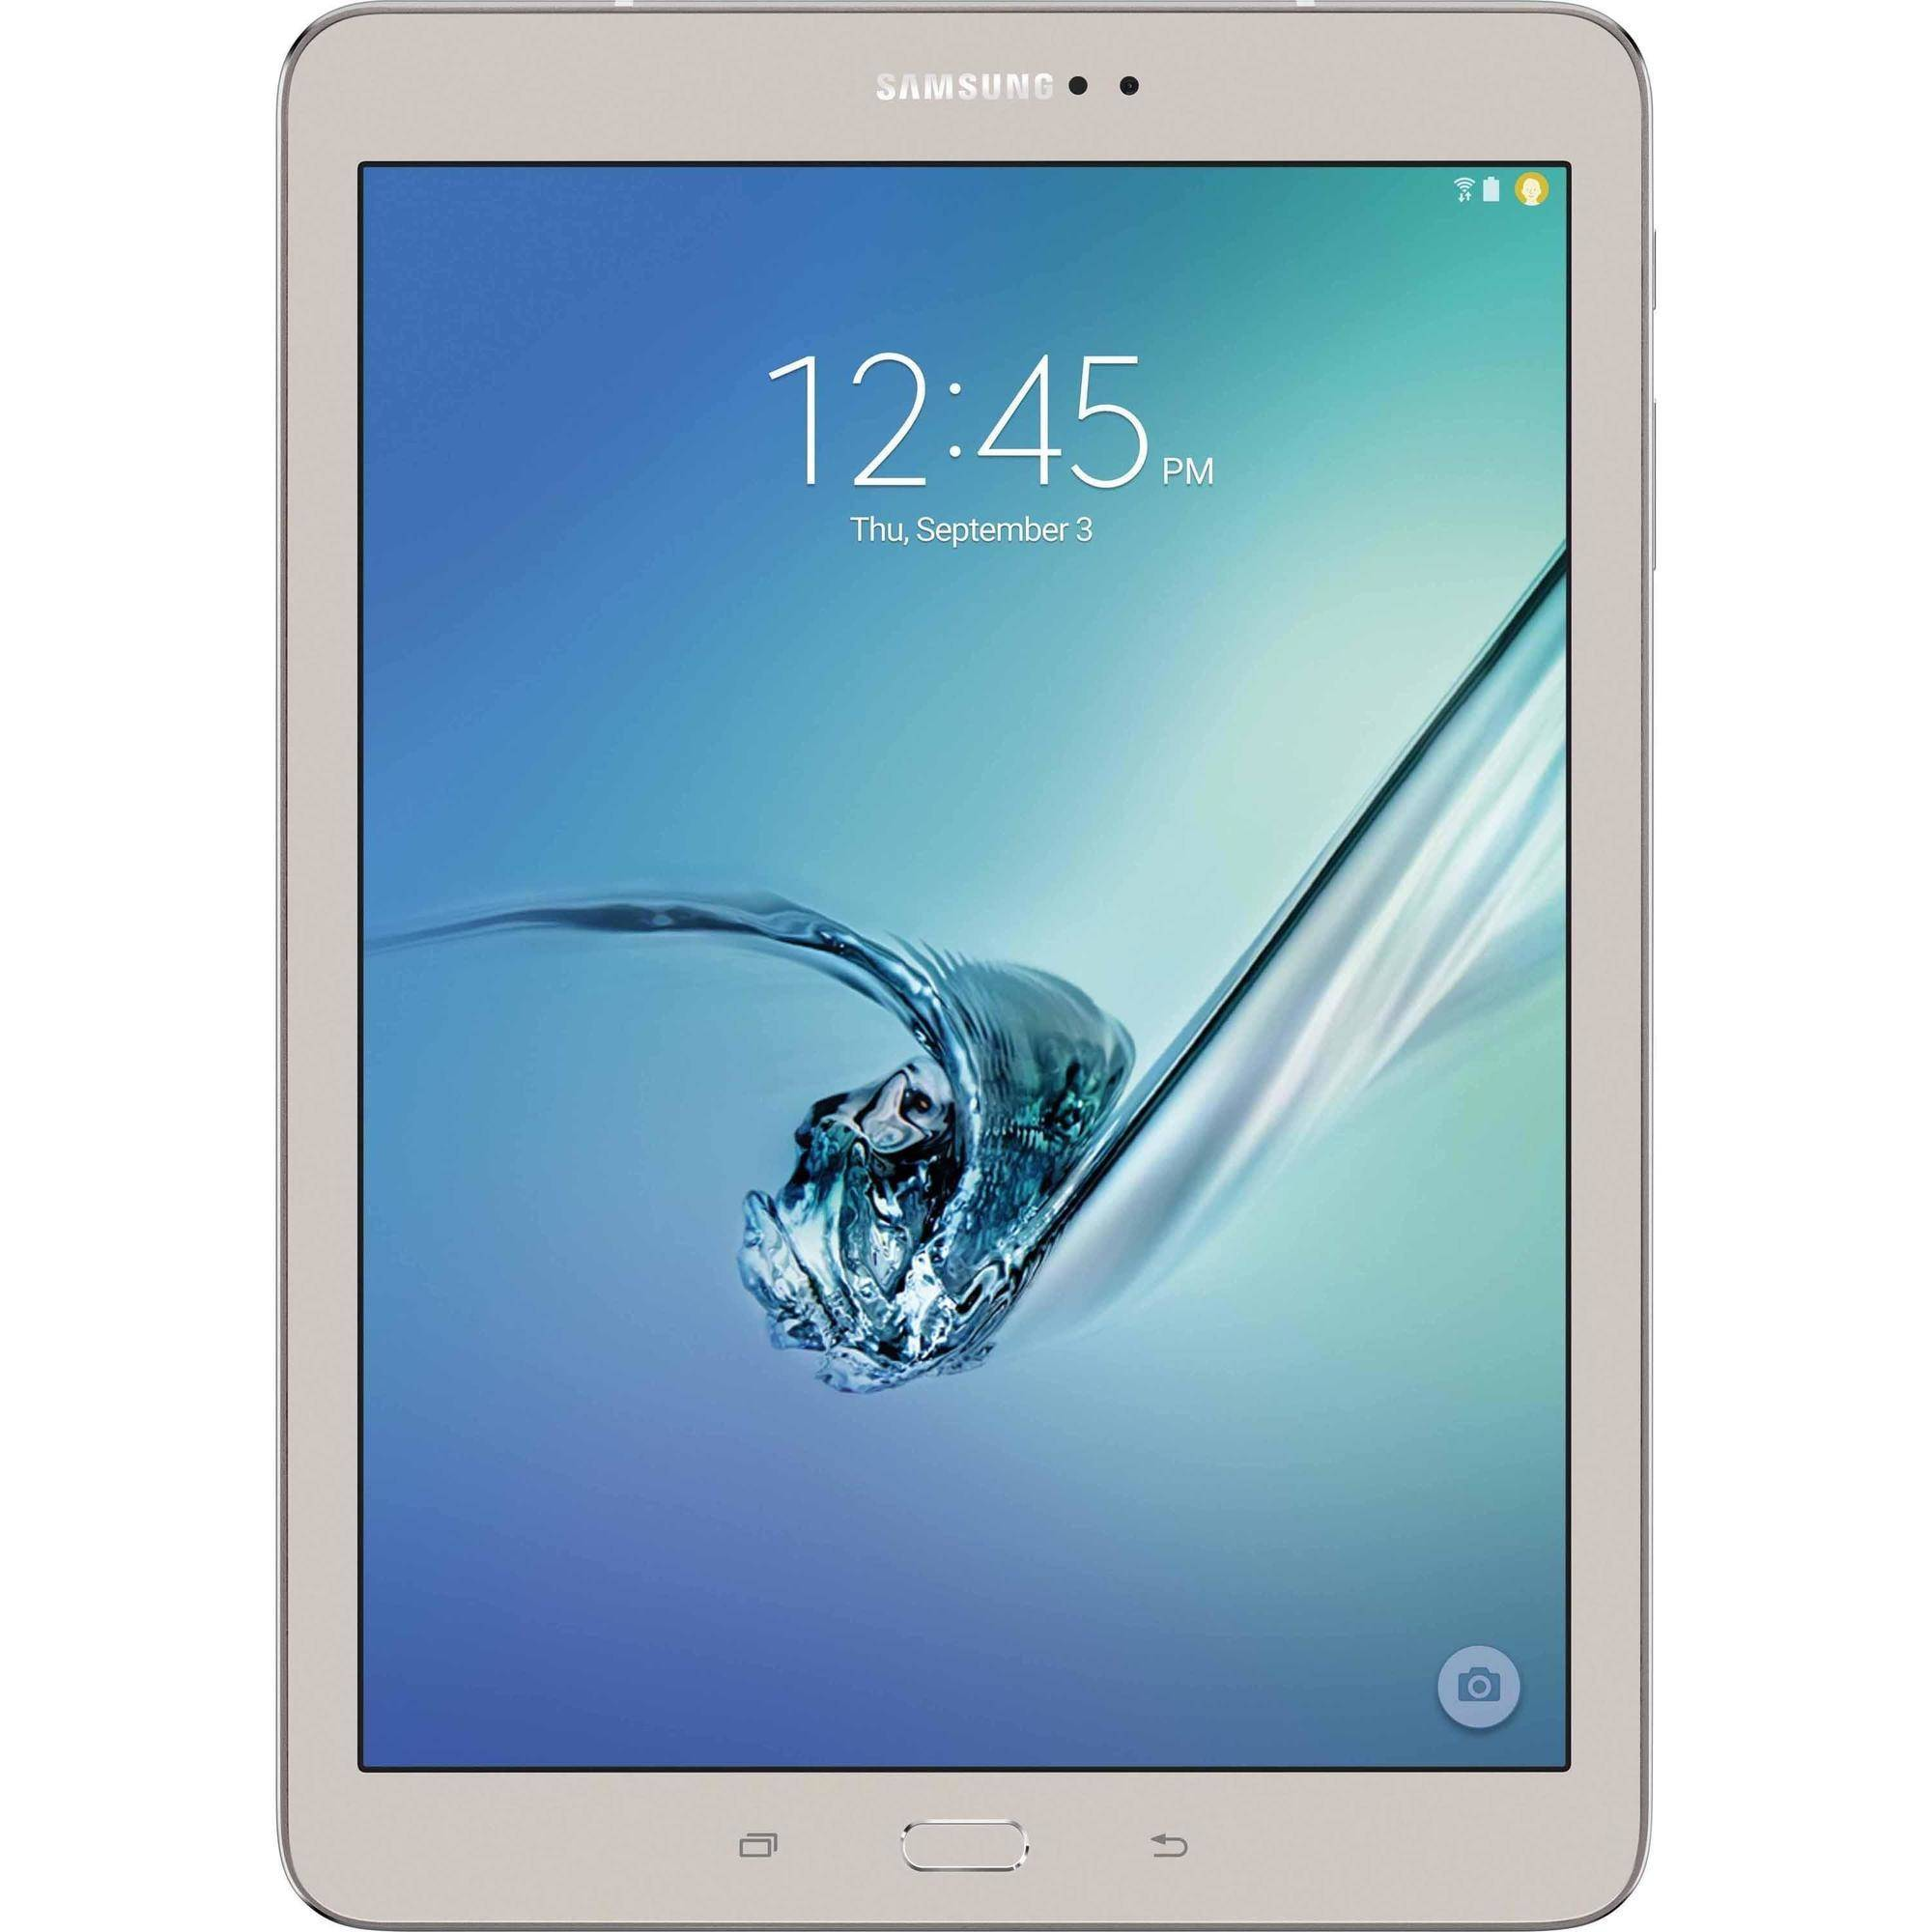 "Refurbished Samsung Galaxy Tab S2 with WiFi 9.7"" Touchscreen Tablet PC Featuring Android 5.0 (Lollipop) Operating System"